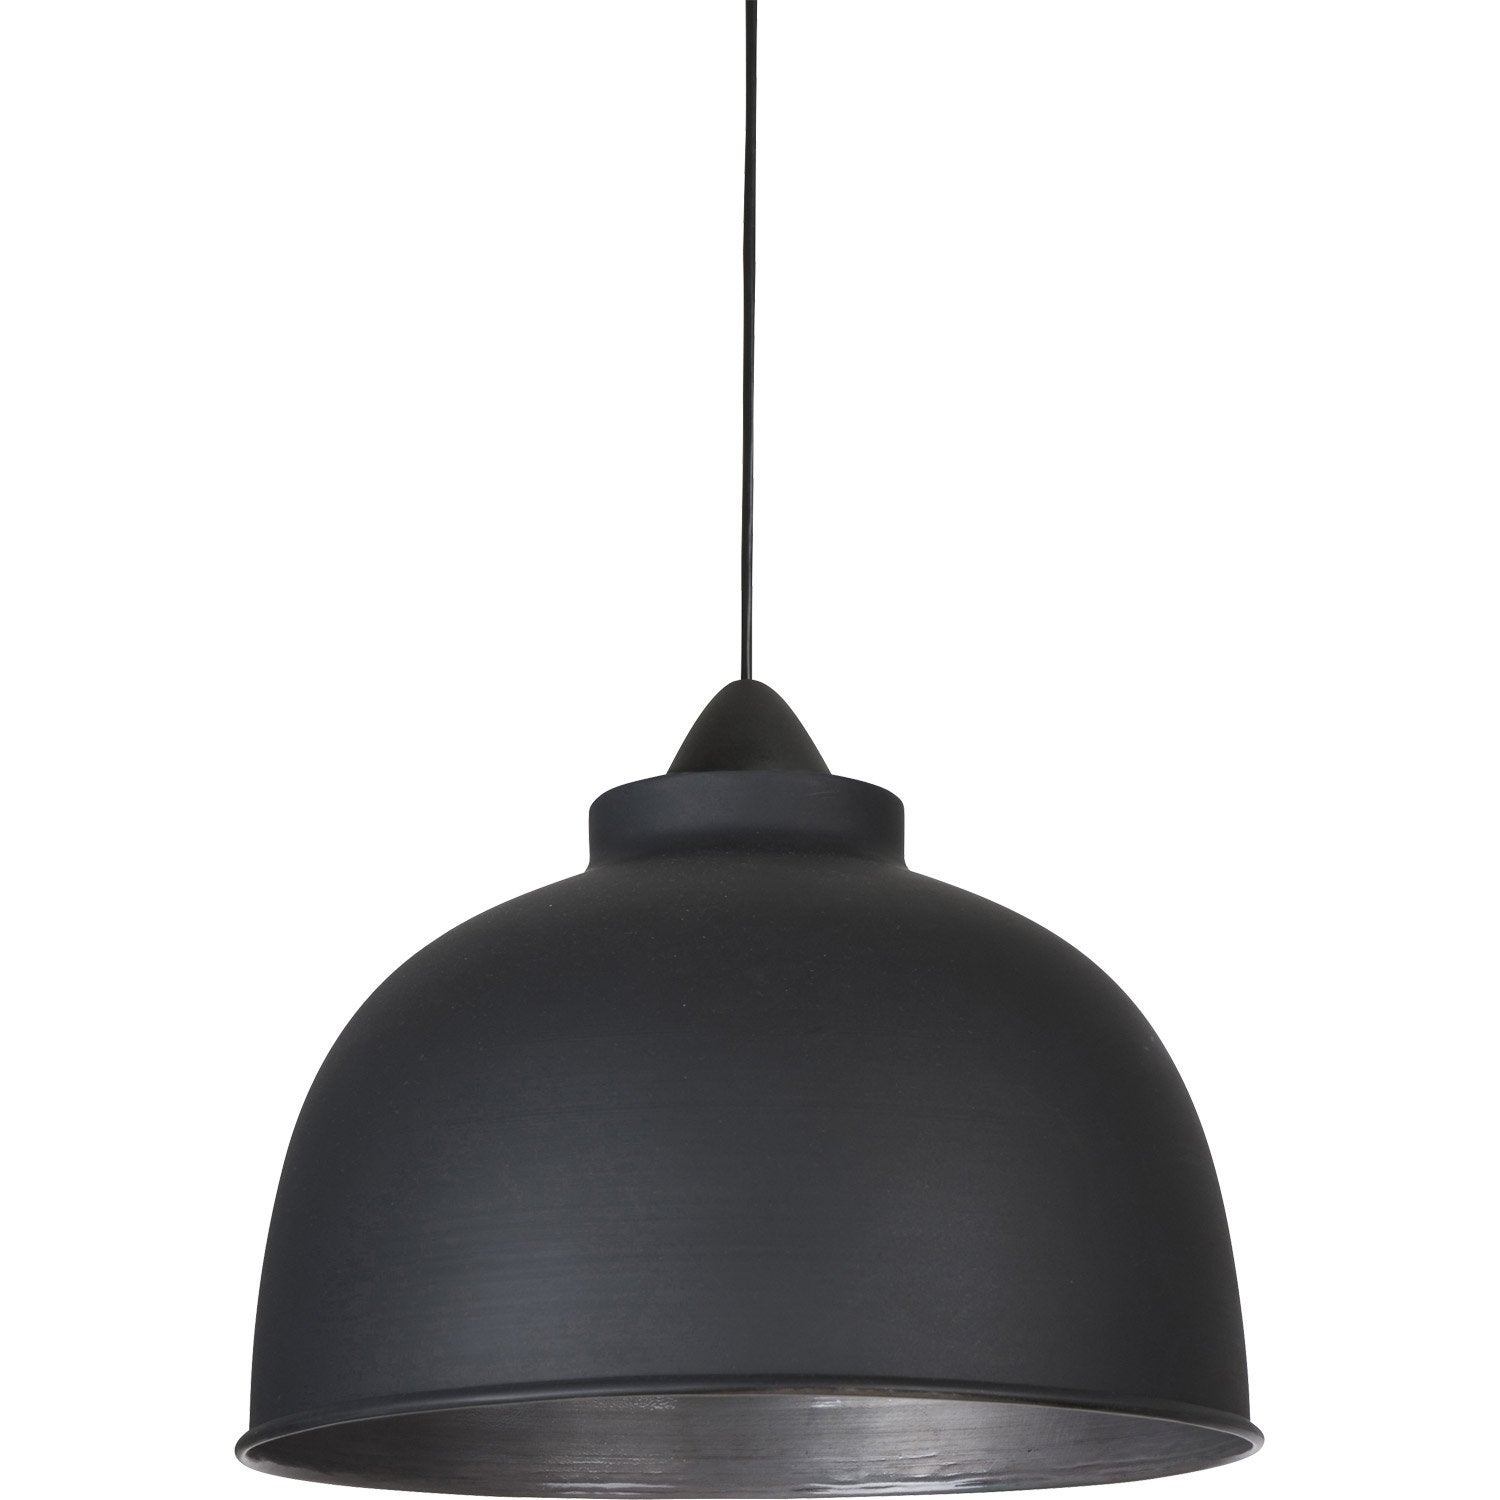 Suspension e27 style industriel little dock m tal noir - Suspension metal industriel ...